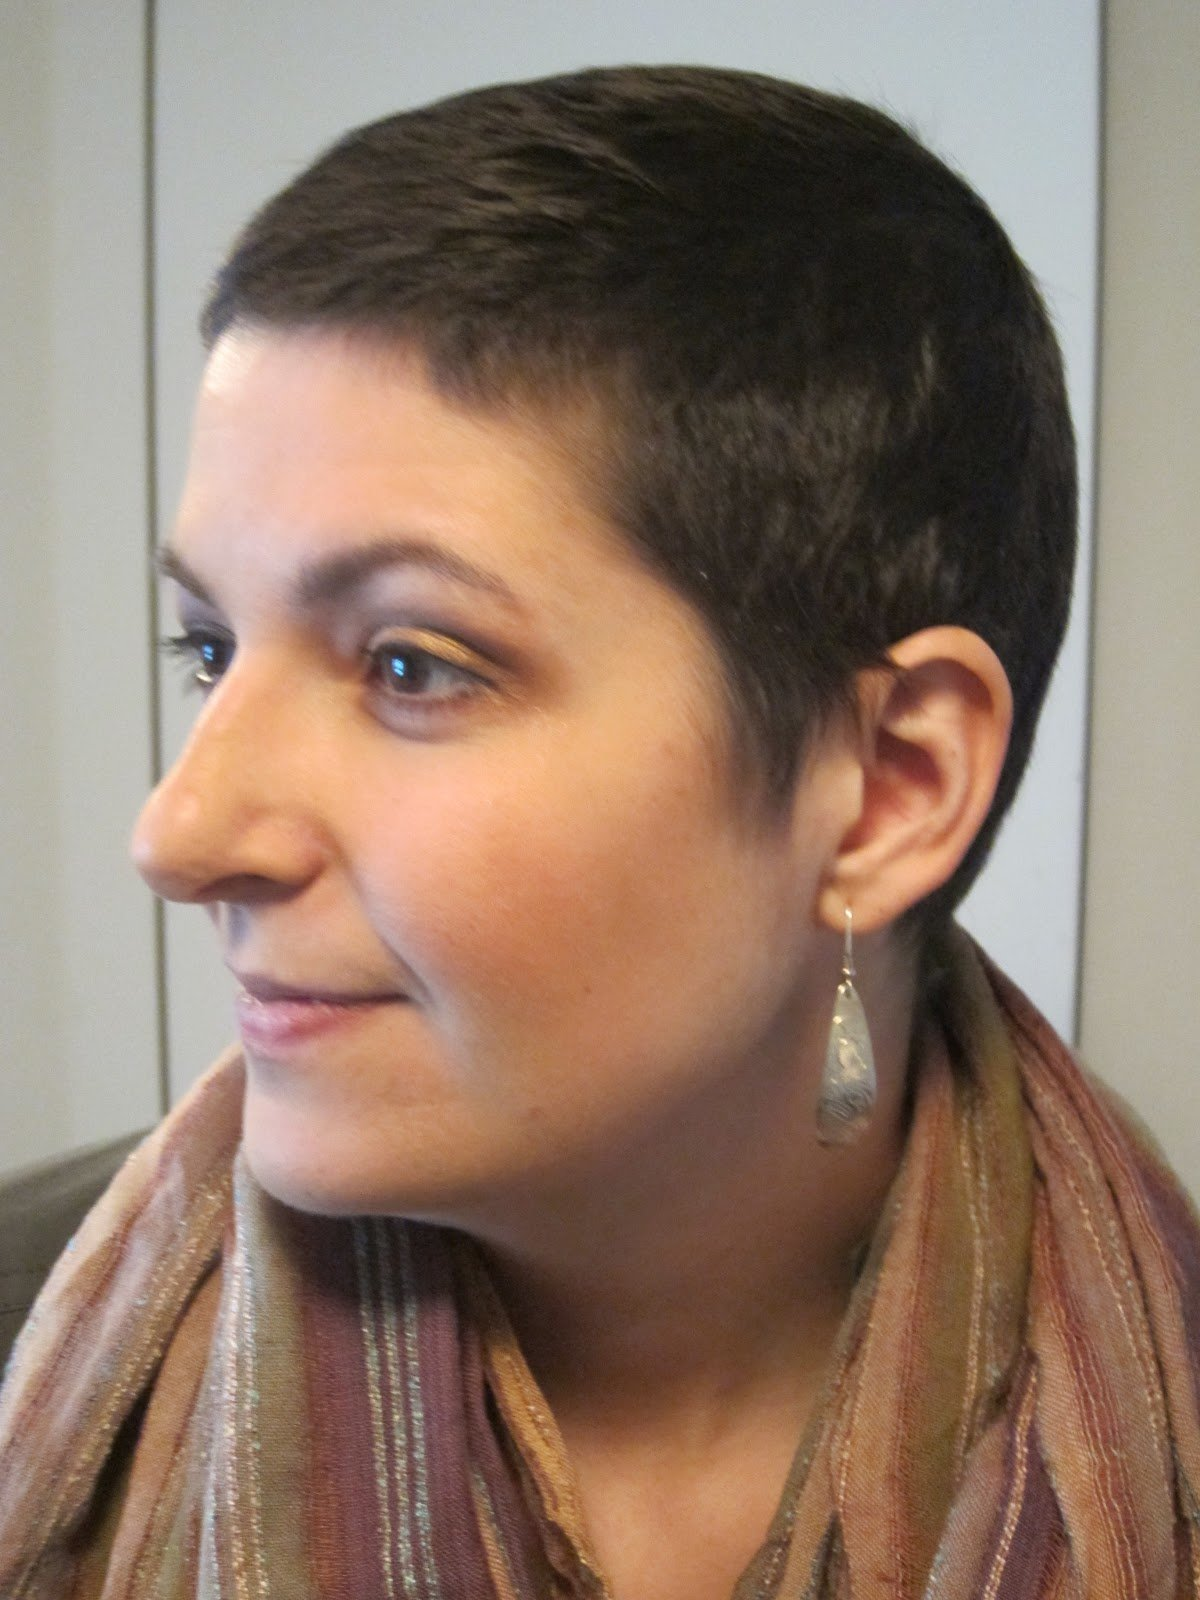 The Best Boobey Trapped Hair Regrowth After Chemo Pictures